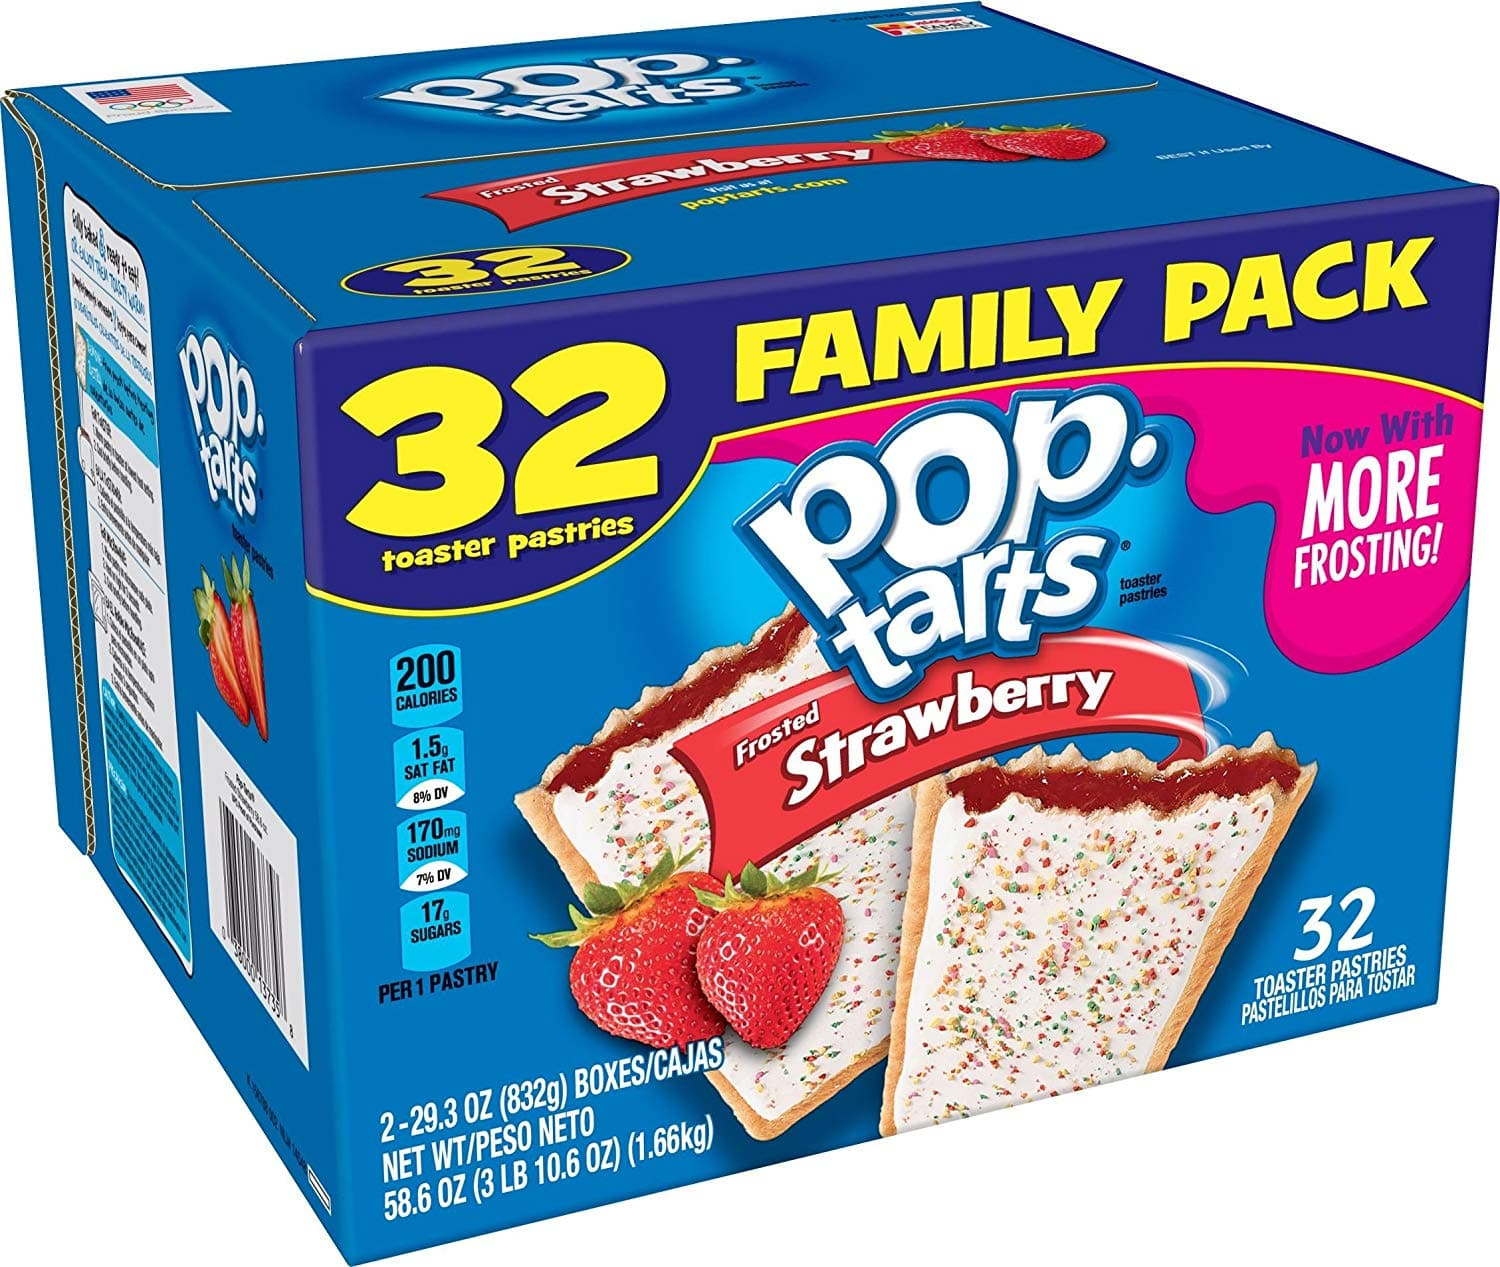 32 Count Box Pop-Tarts Breakfast Toaster Pastries- Frosted Strawberry - $5.97 AC & S&S (or One-Time) $5.17 AC & 5 S&S Orders) - Amazon